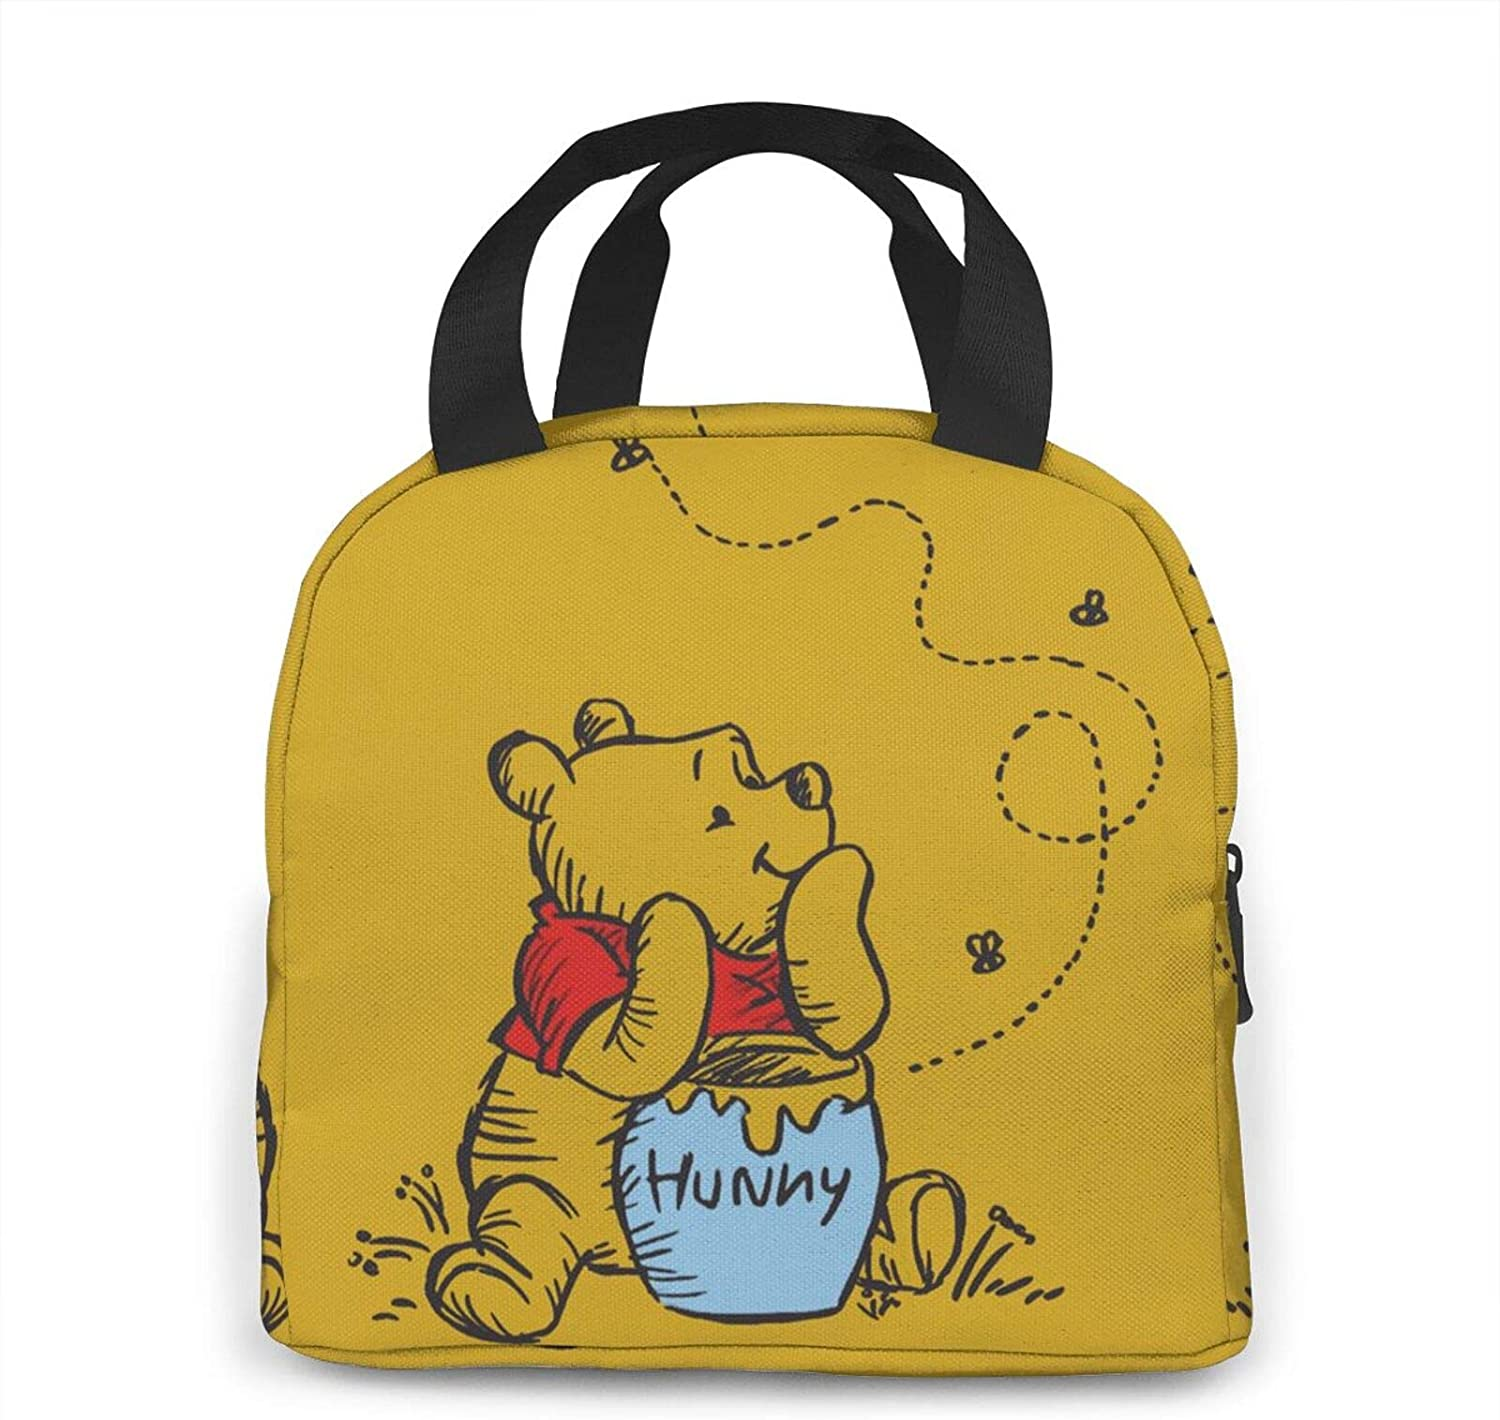 WOMFUI Insulated Zipper Winnie The Pooh Lunch Bag Cooler Tote Bag for Men Women, Lunch Boxes Meal Prep Handbag